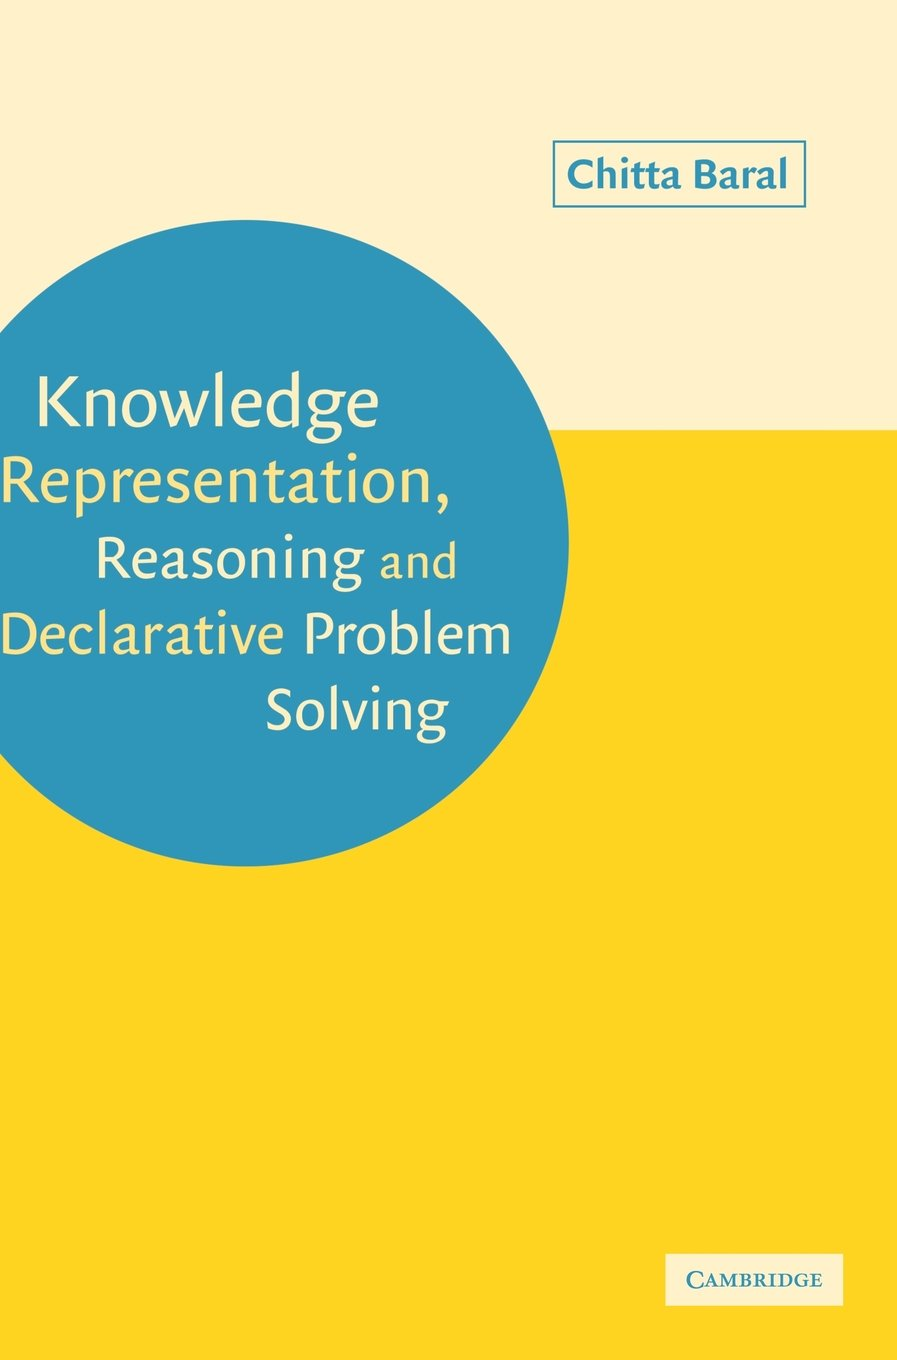 Knowledge Representation, Reasoning and Declarative Problem Solving by Cambridge University Press